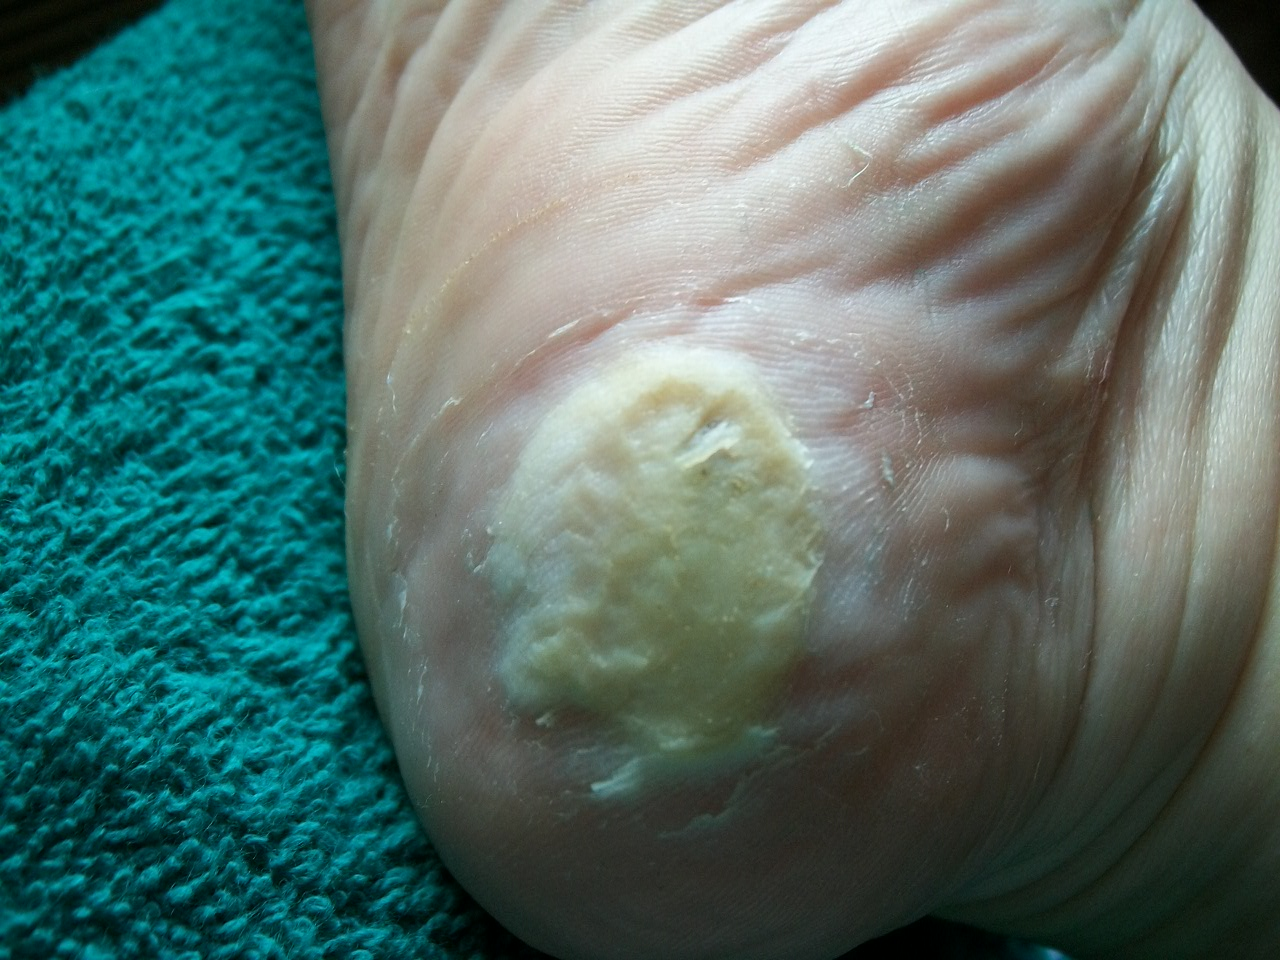 Magnificent Planters Wart Root Diagram Plantar Warts Verrucae Diagnosis Better Wiring 101 Archstreekradiomeanderfmnl